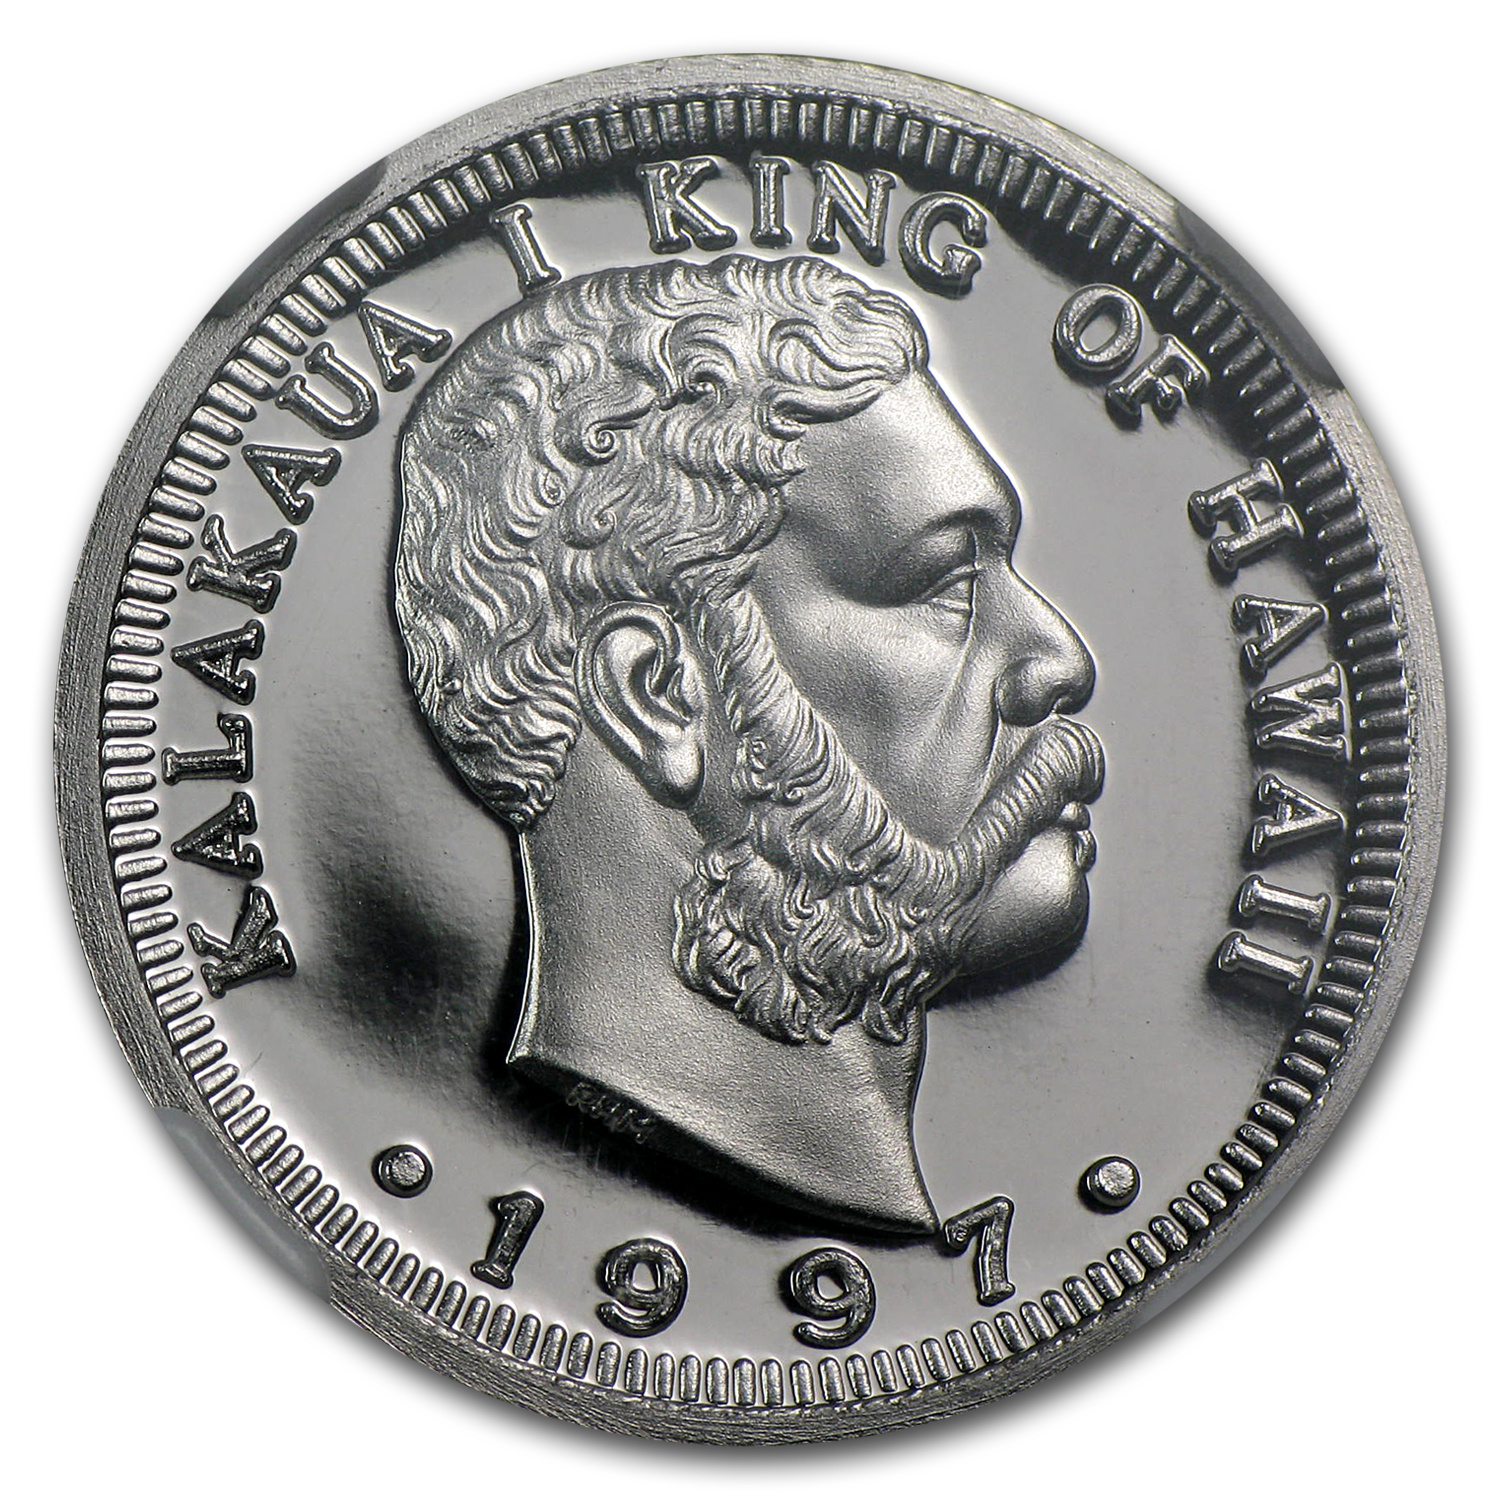 1997 1/4 oz Hawaiian Platinum King (PF-70 UCAM NGC)